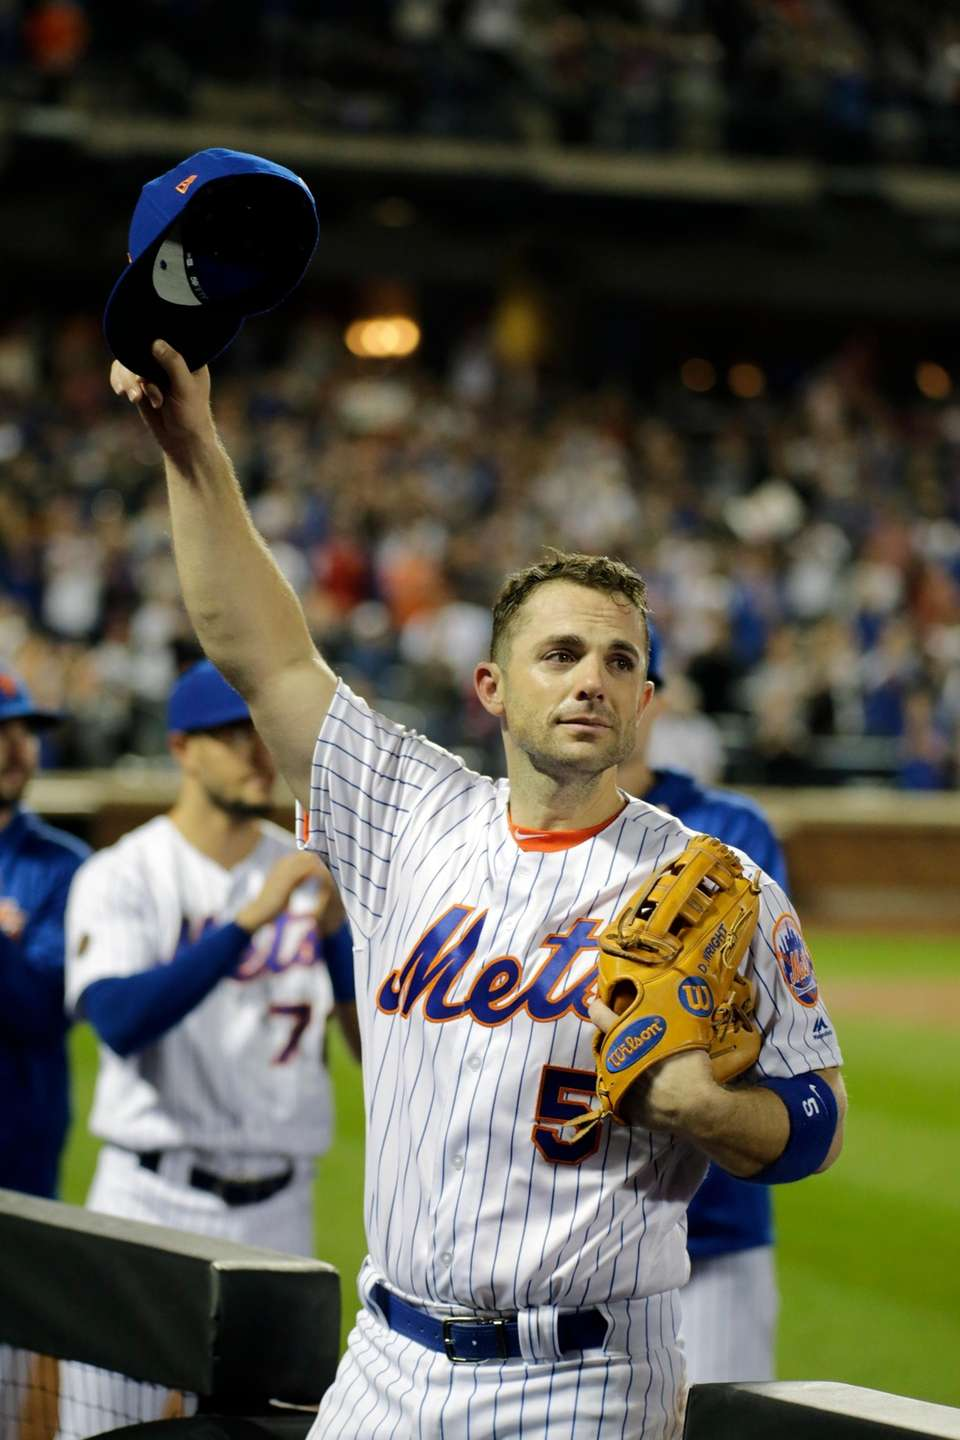 Mets third baseman David Wright leaves the field